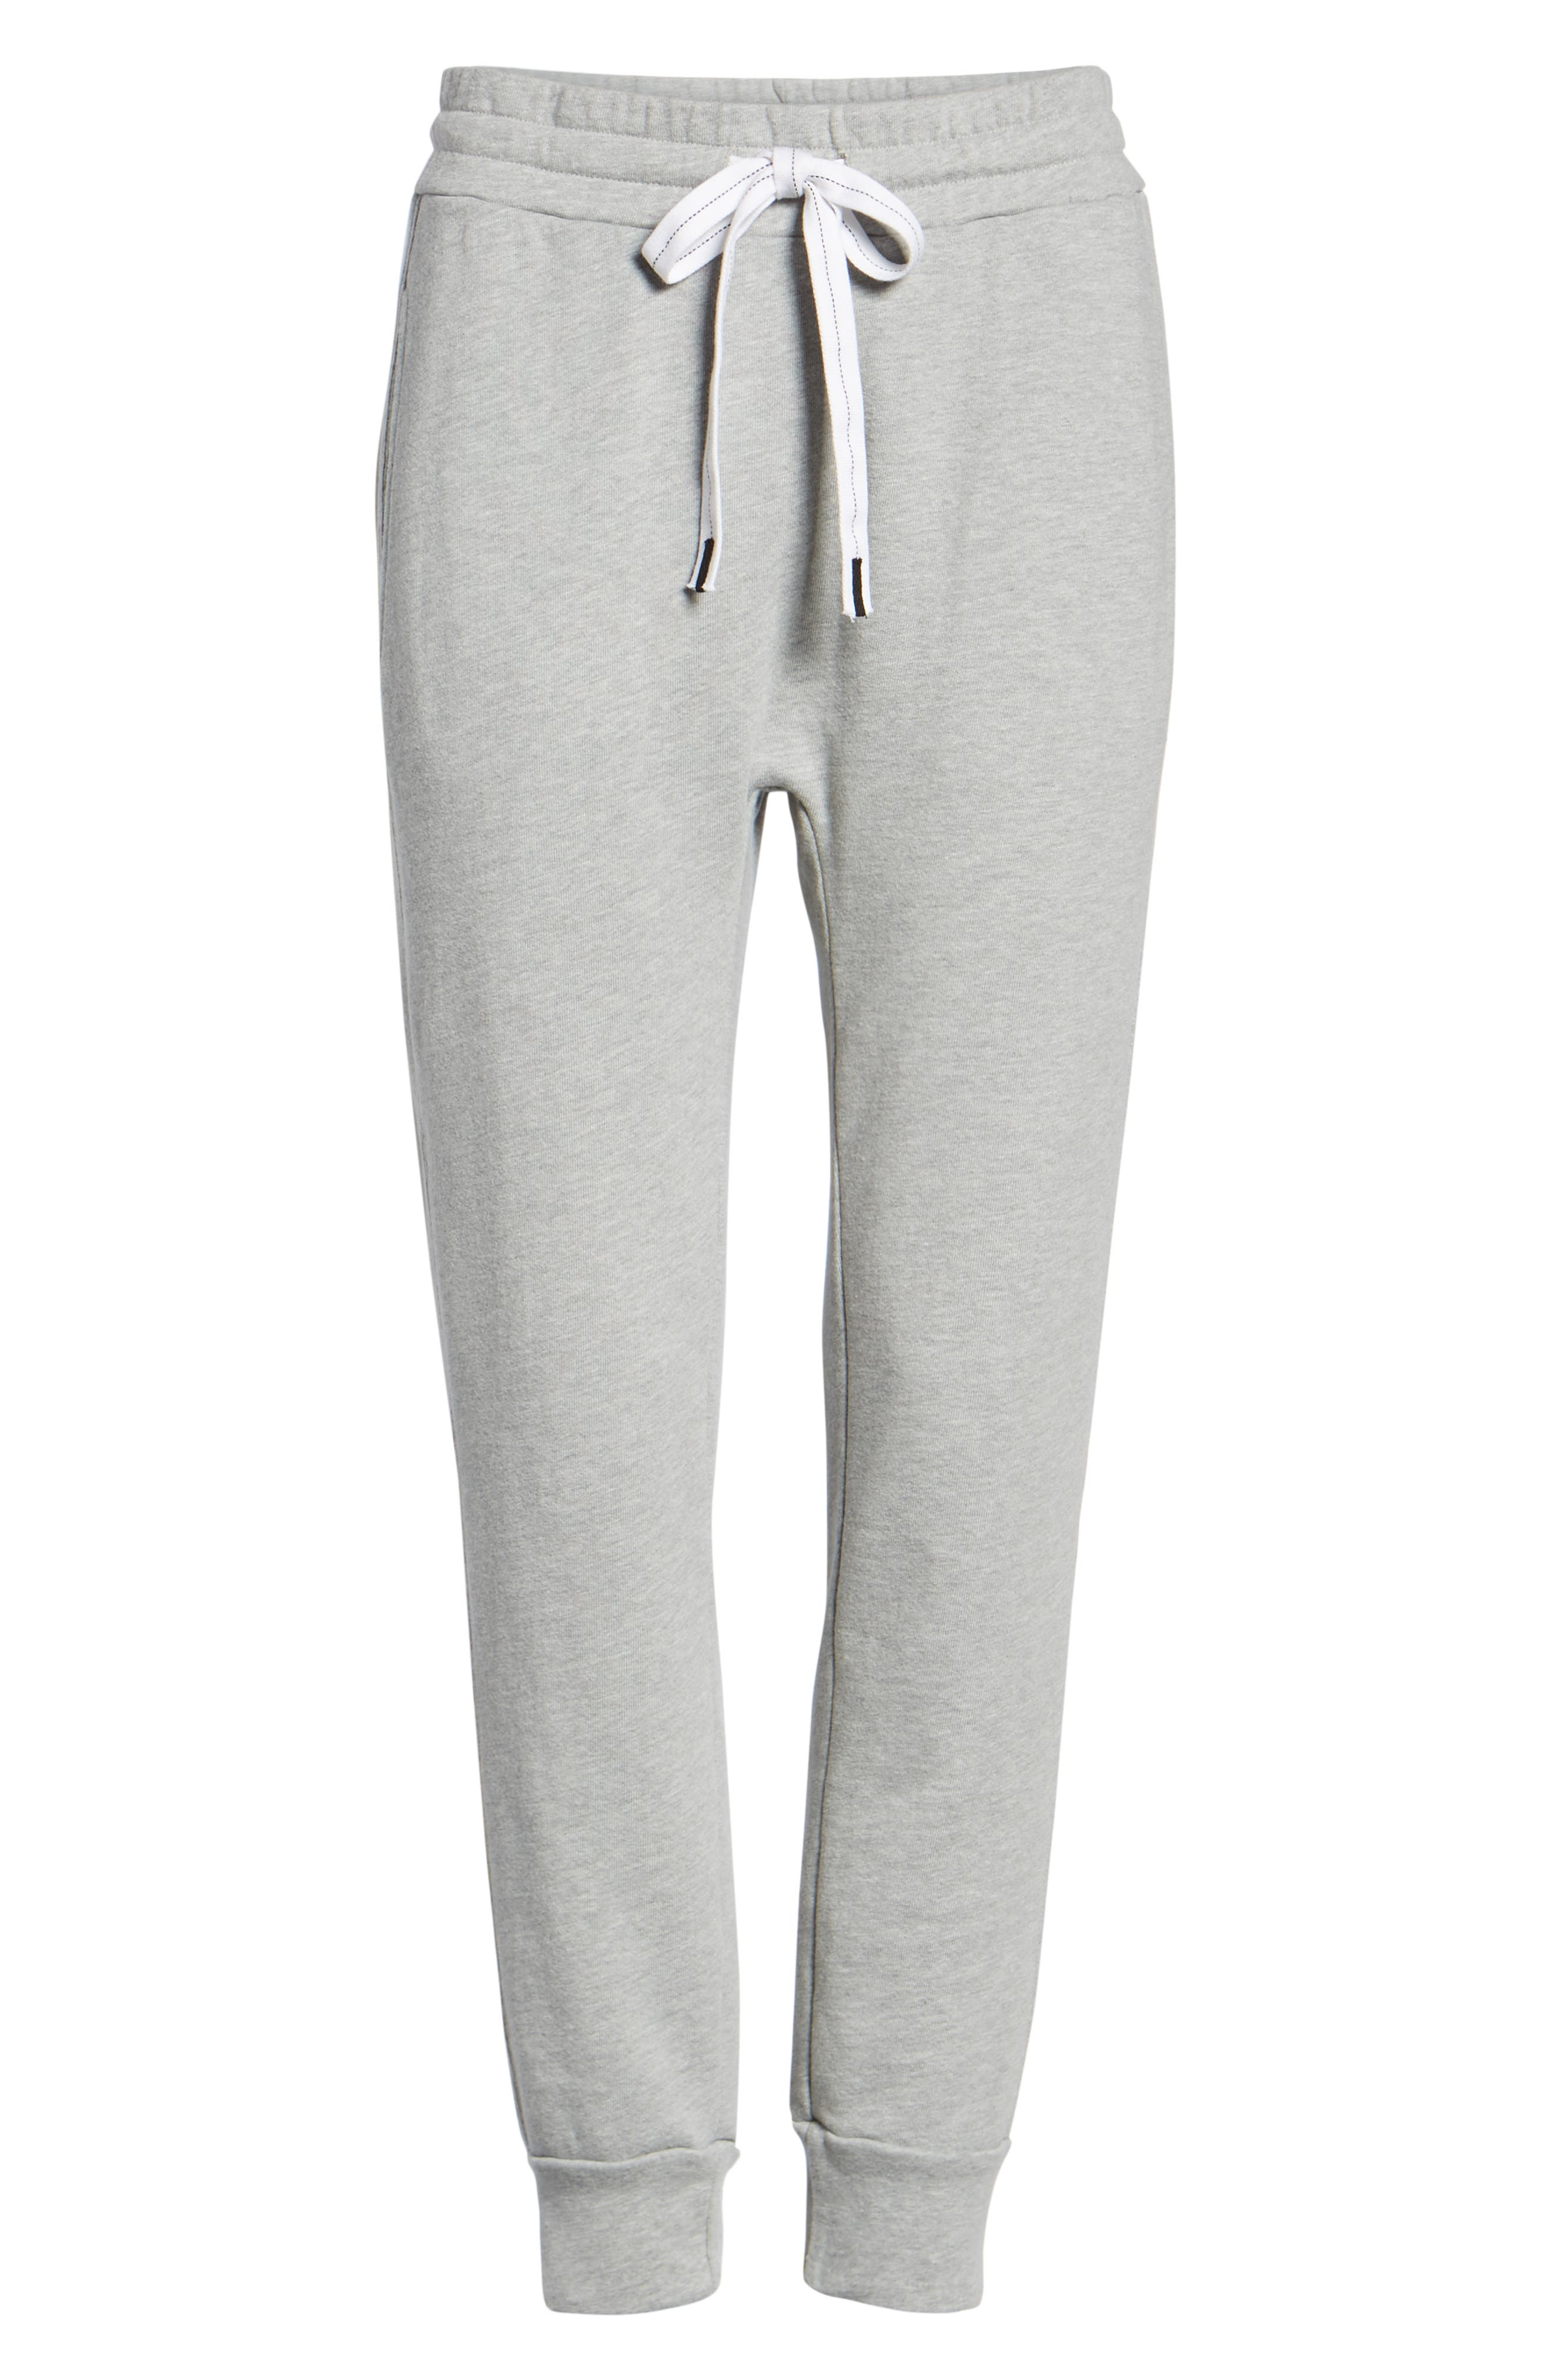 French Terry Joggers,                             Alternate thumbnail 7, color,                             HEATHER GREY